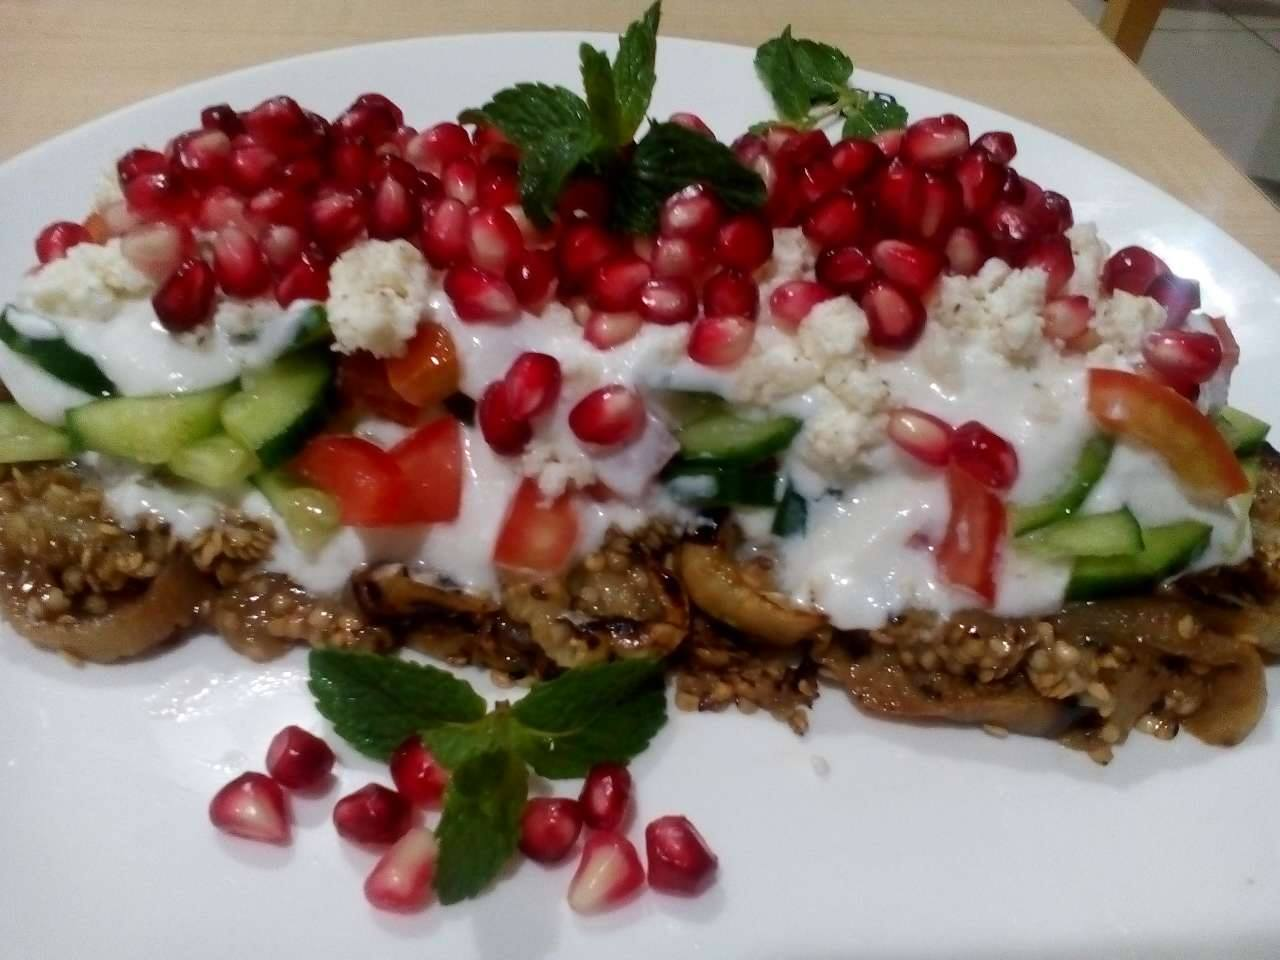 Eggplant Salad with Feta and Pomegranate